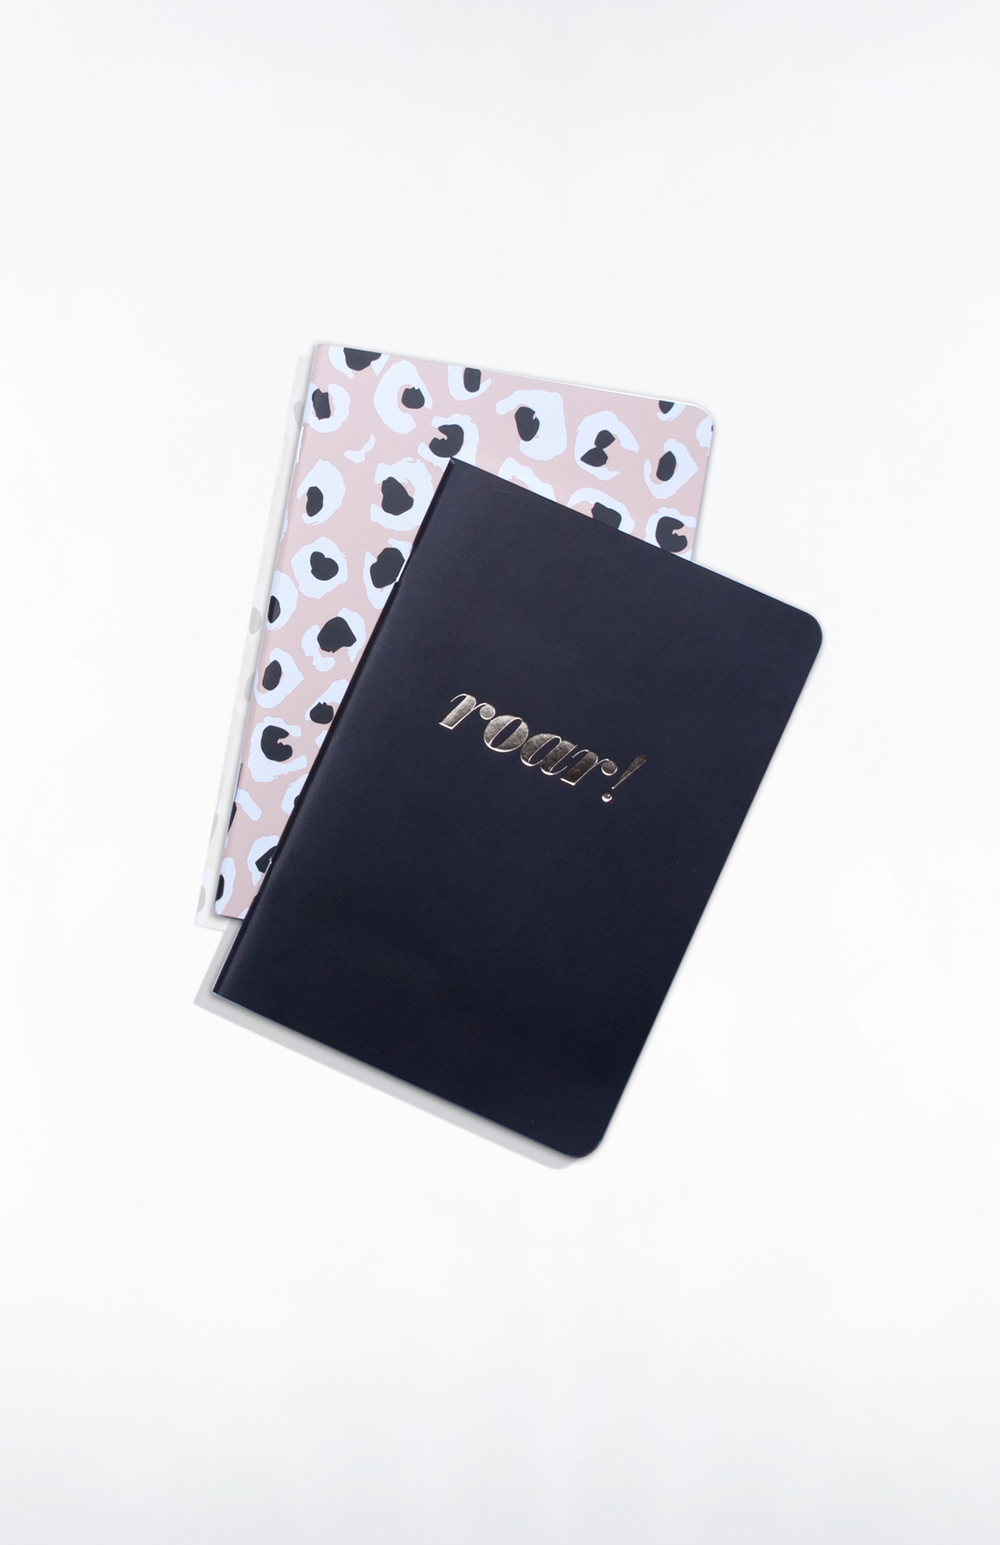 SADDLE STITCHED NOTEBOOK SET- 5in x 7in